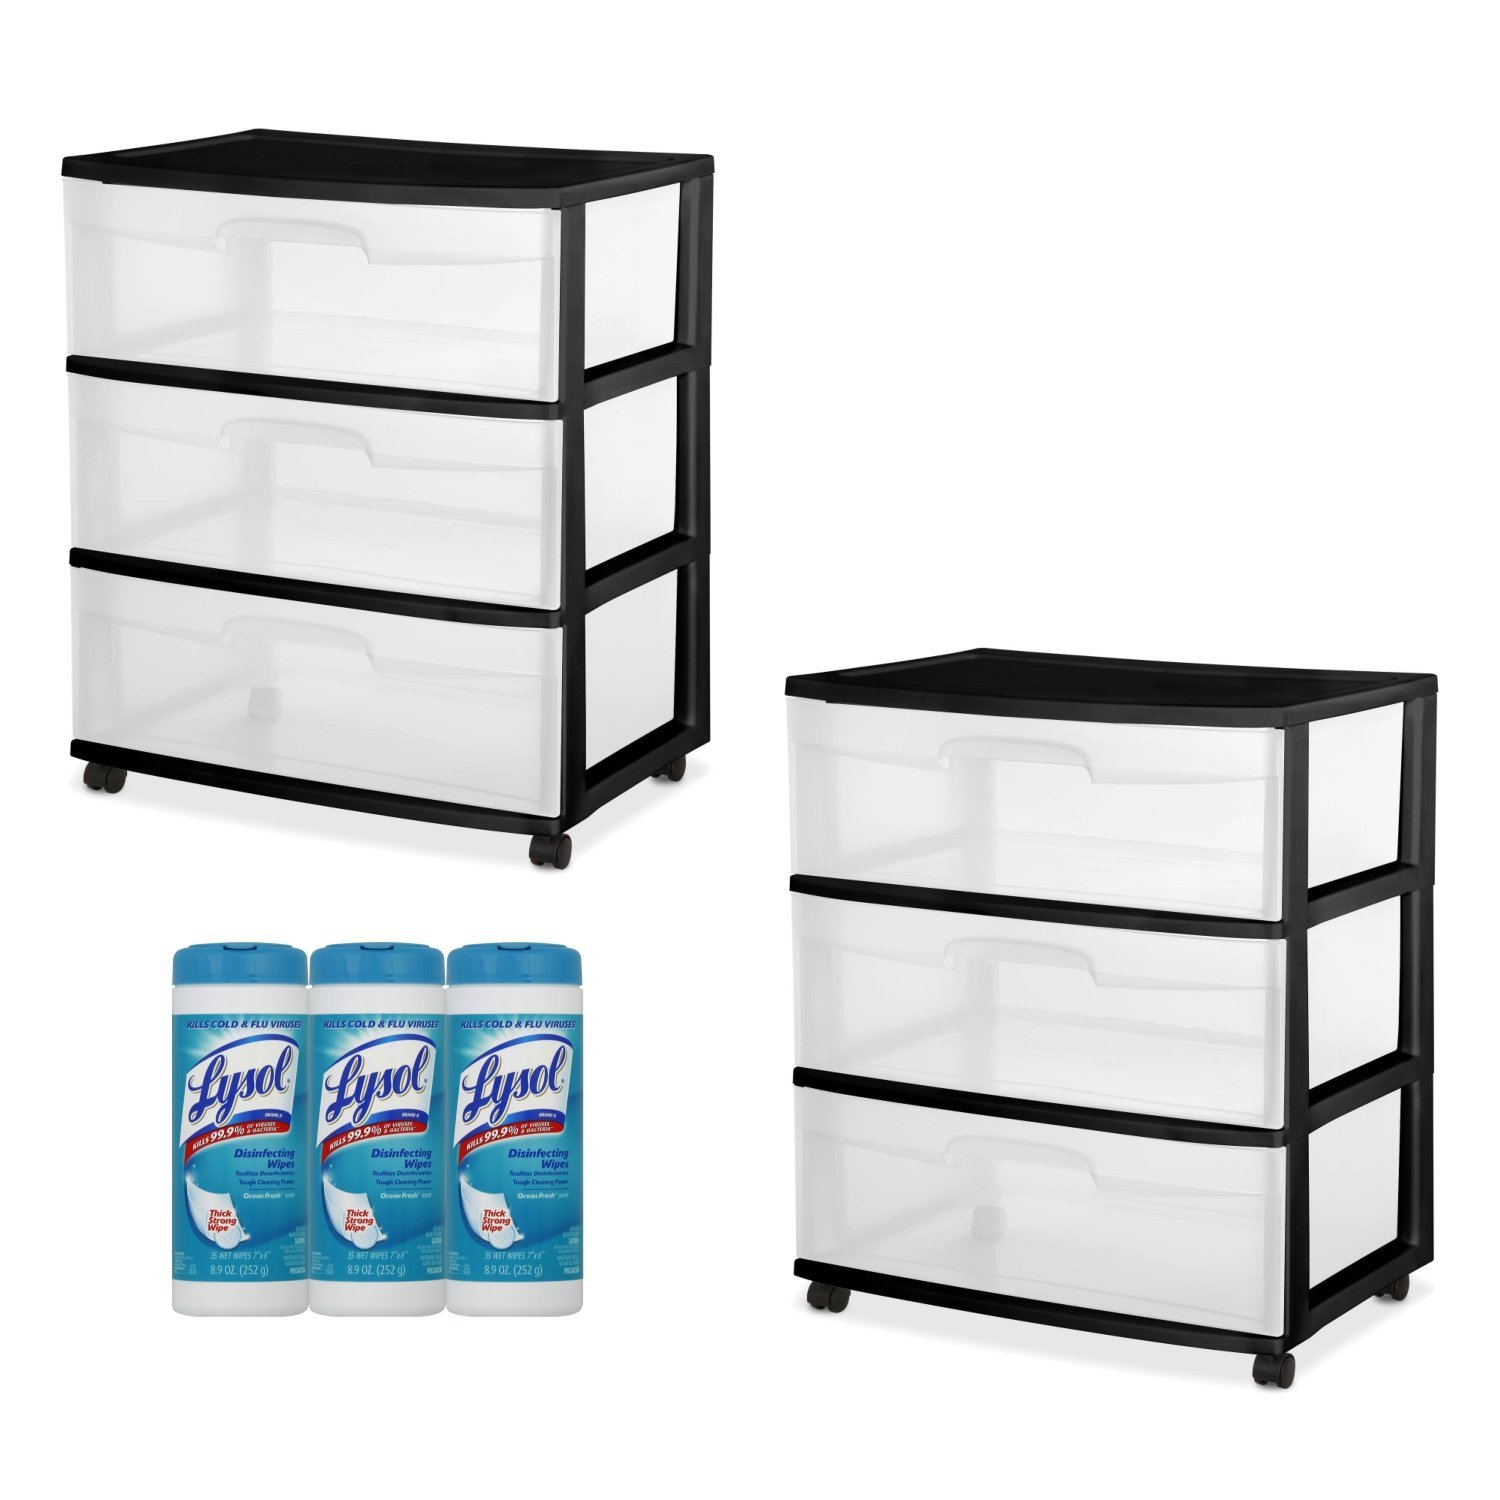 Sterilite 3-Drawer Wide Cart Black Frame with See-Through Drawers, 2-PACK with Lysol Disinfecting Wipes, 105 Count